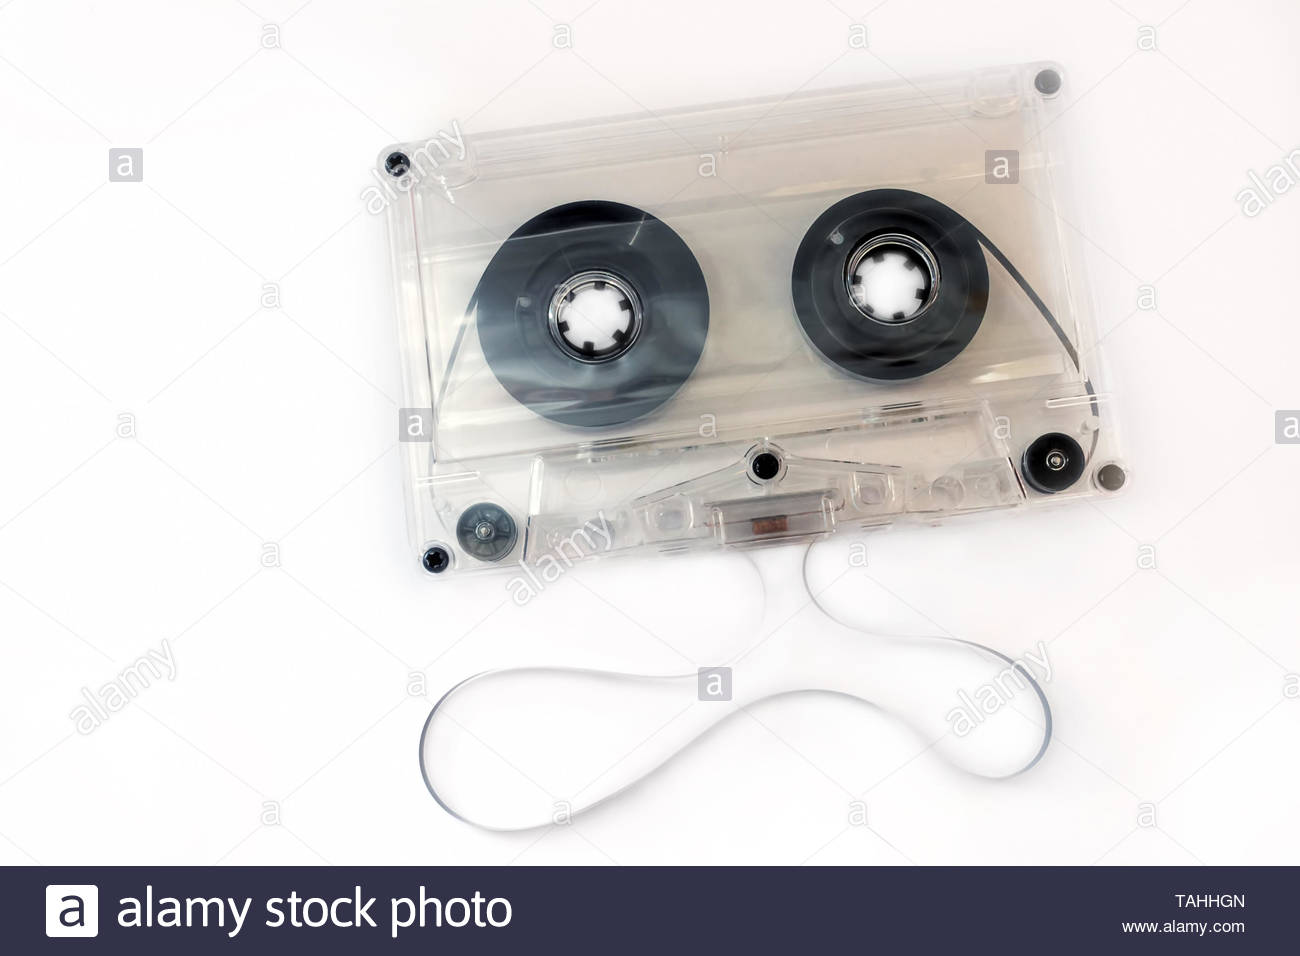 audio compact cassette with transparent body, and unwinded tape - Stock Image